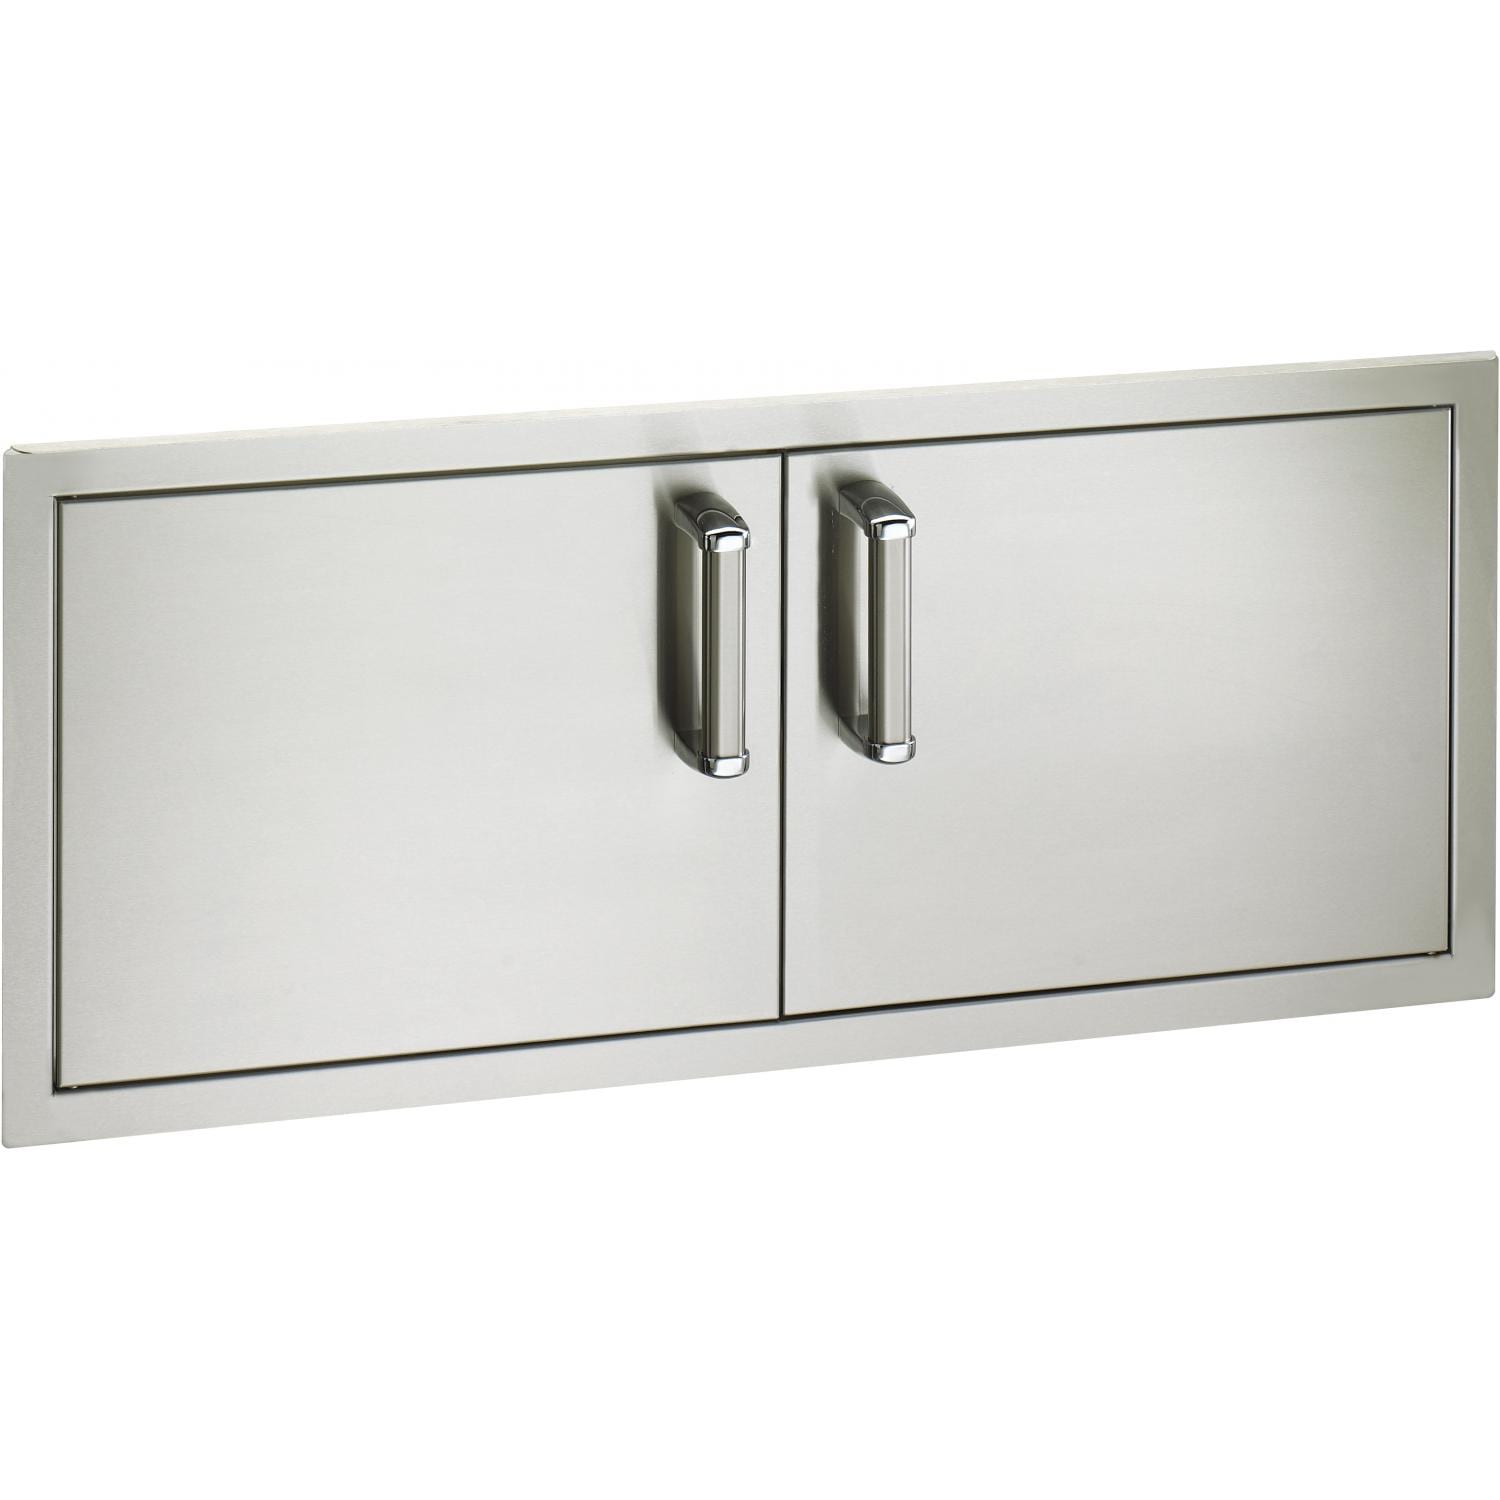 Fire Magic 39-Inch Double Access Door